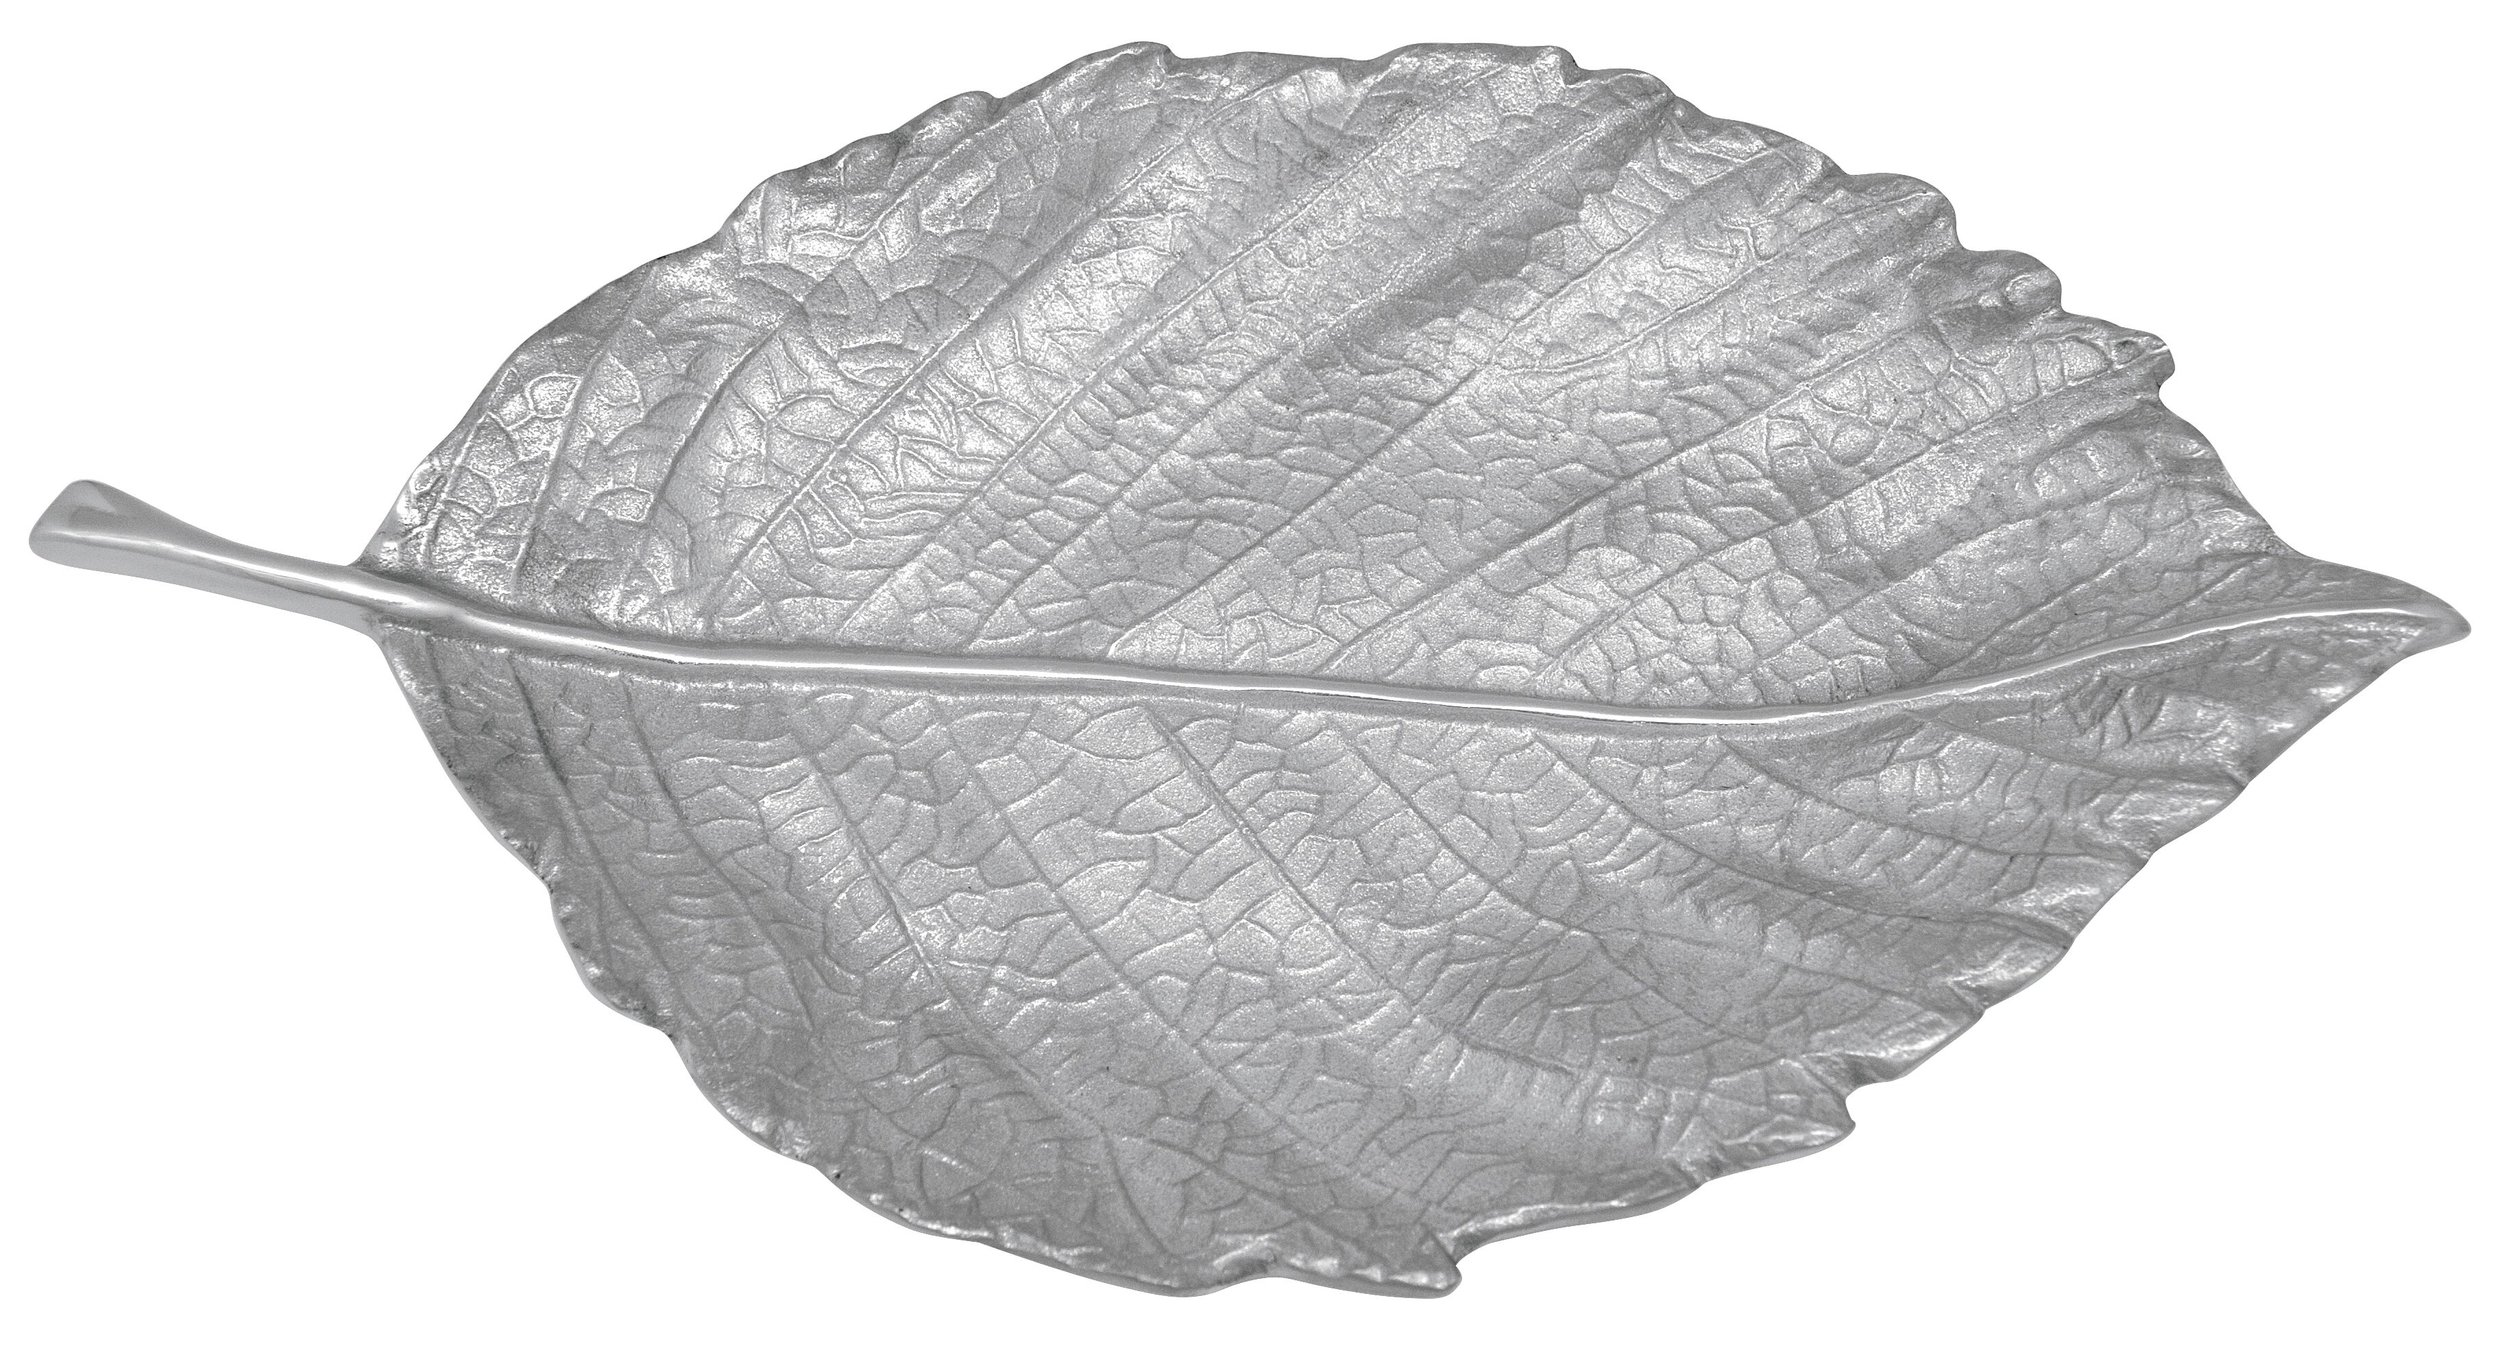 Satin Medium Leaf Server